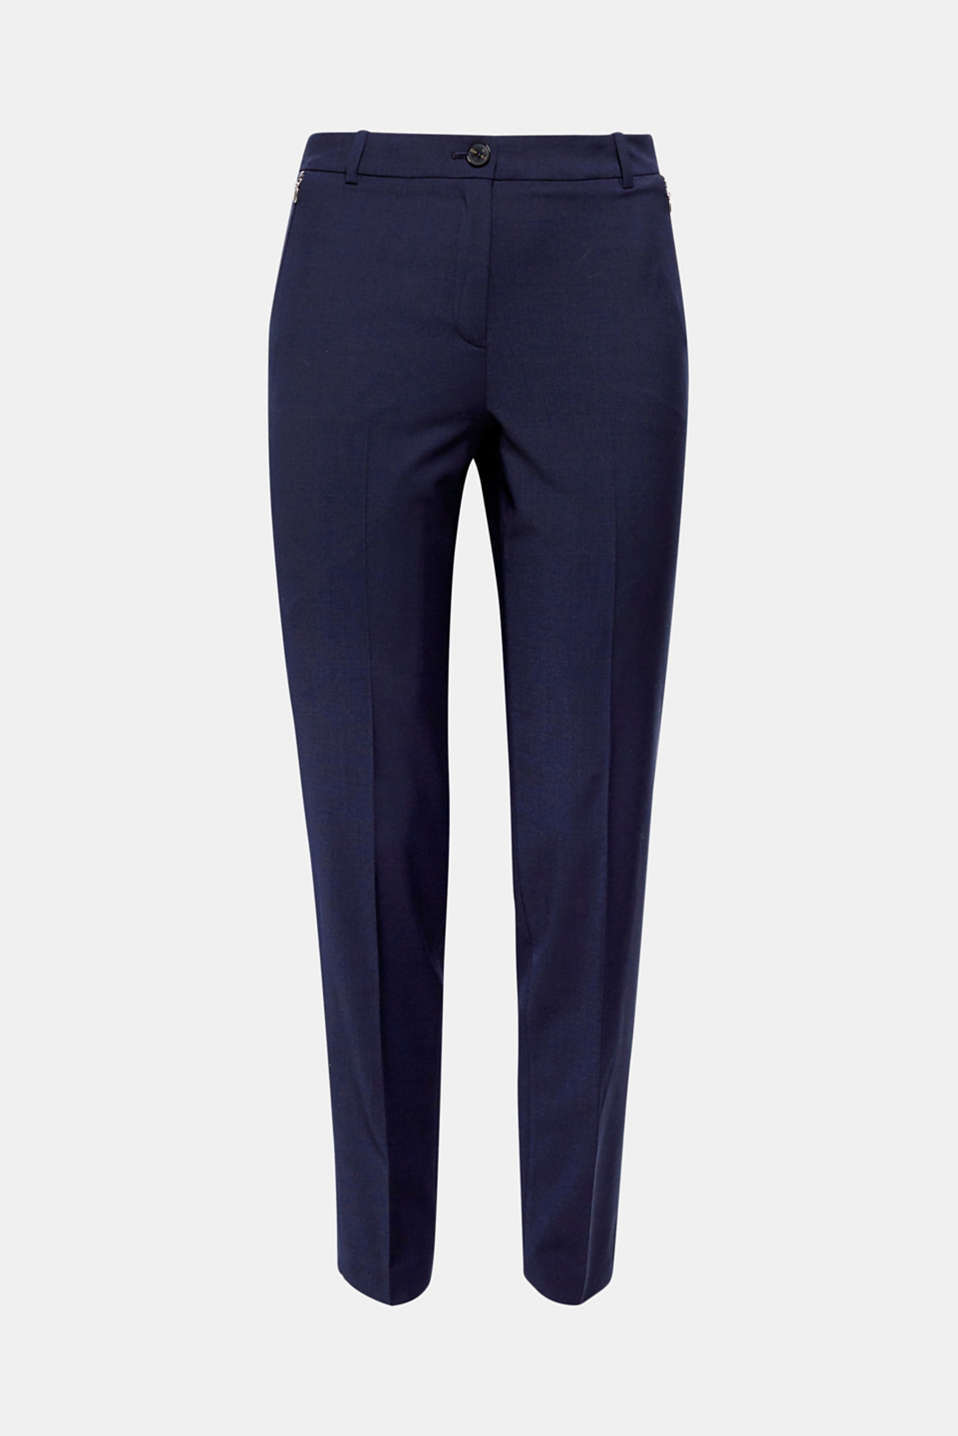 Move the way you want and feel fantastic as well as awesomely attired in these ankle-length, bi-stretch trousers!